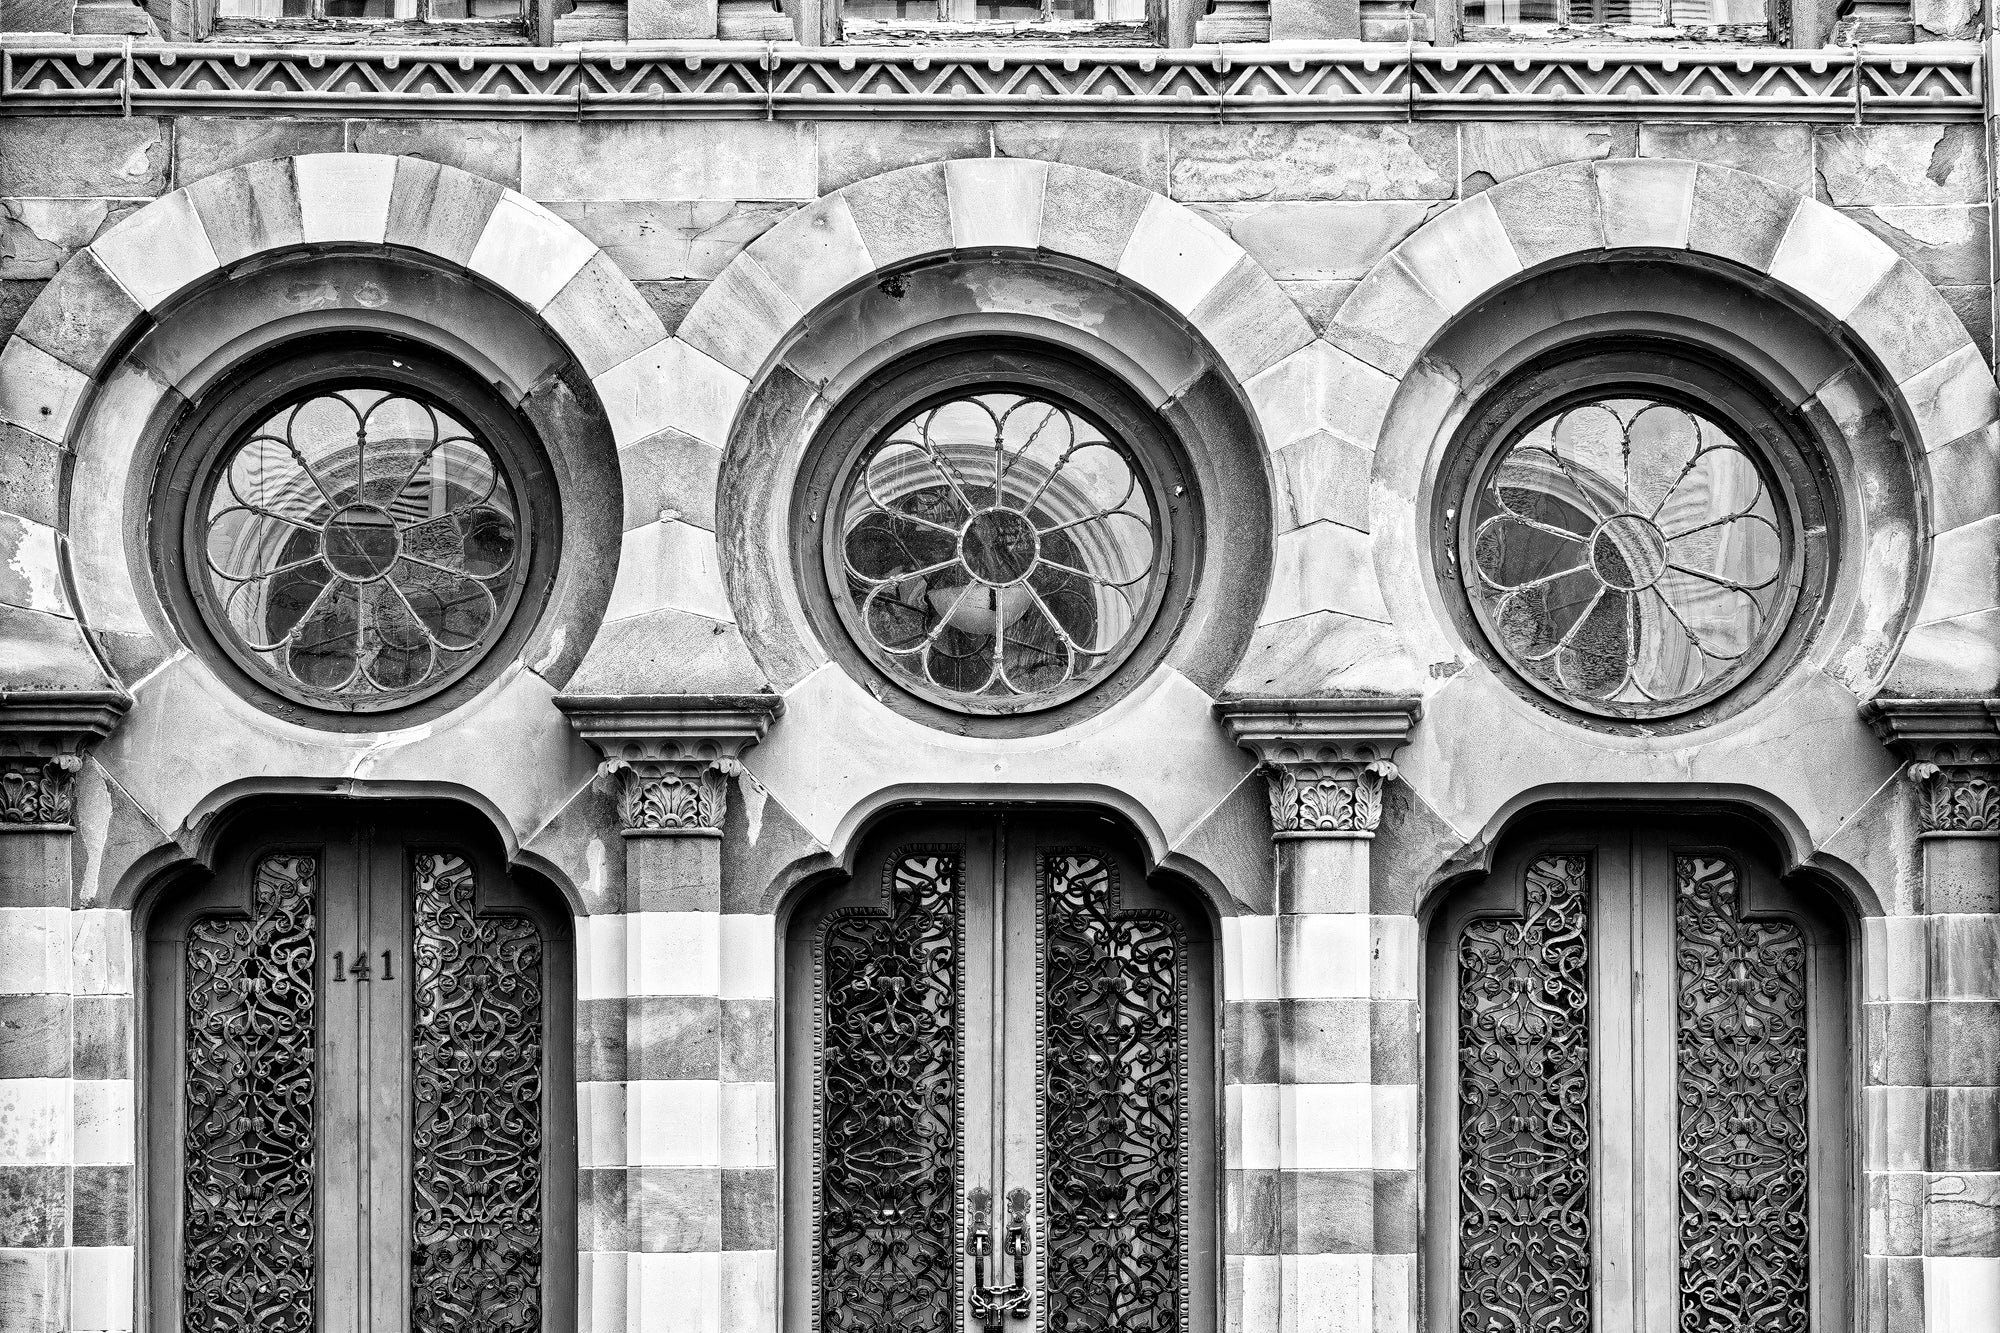 Old Farmers and Exchange Bank in Charleston (Detail) - Black and White Photograph by Keith Dotson. Buy a fine art print here.